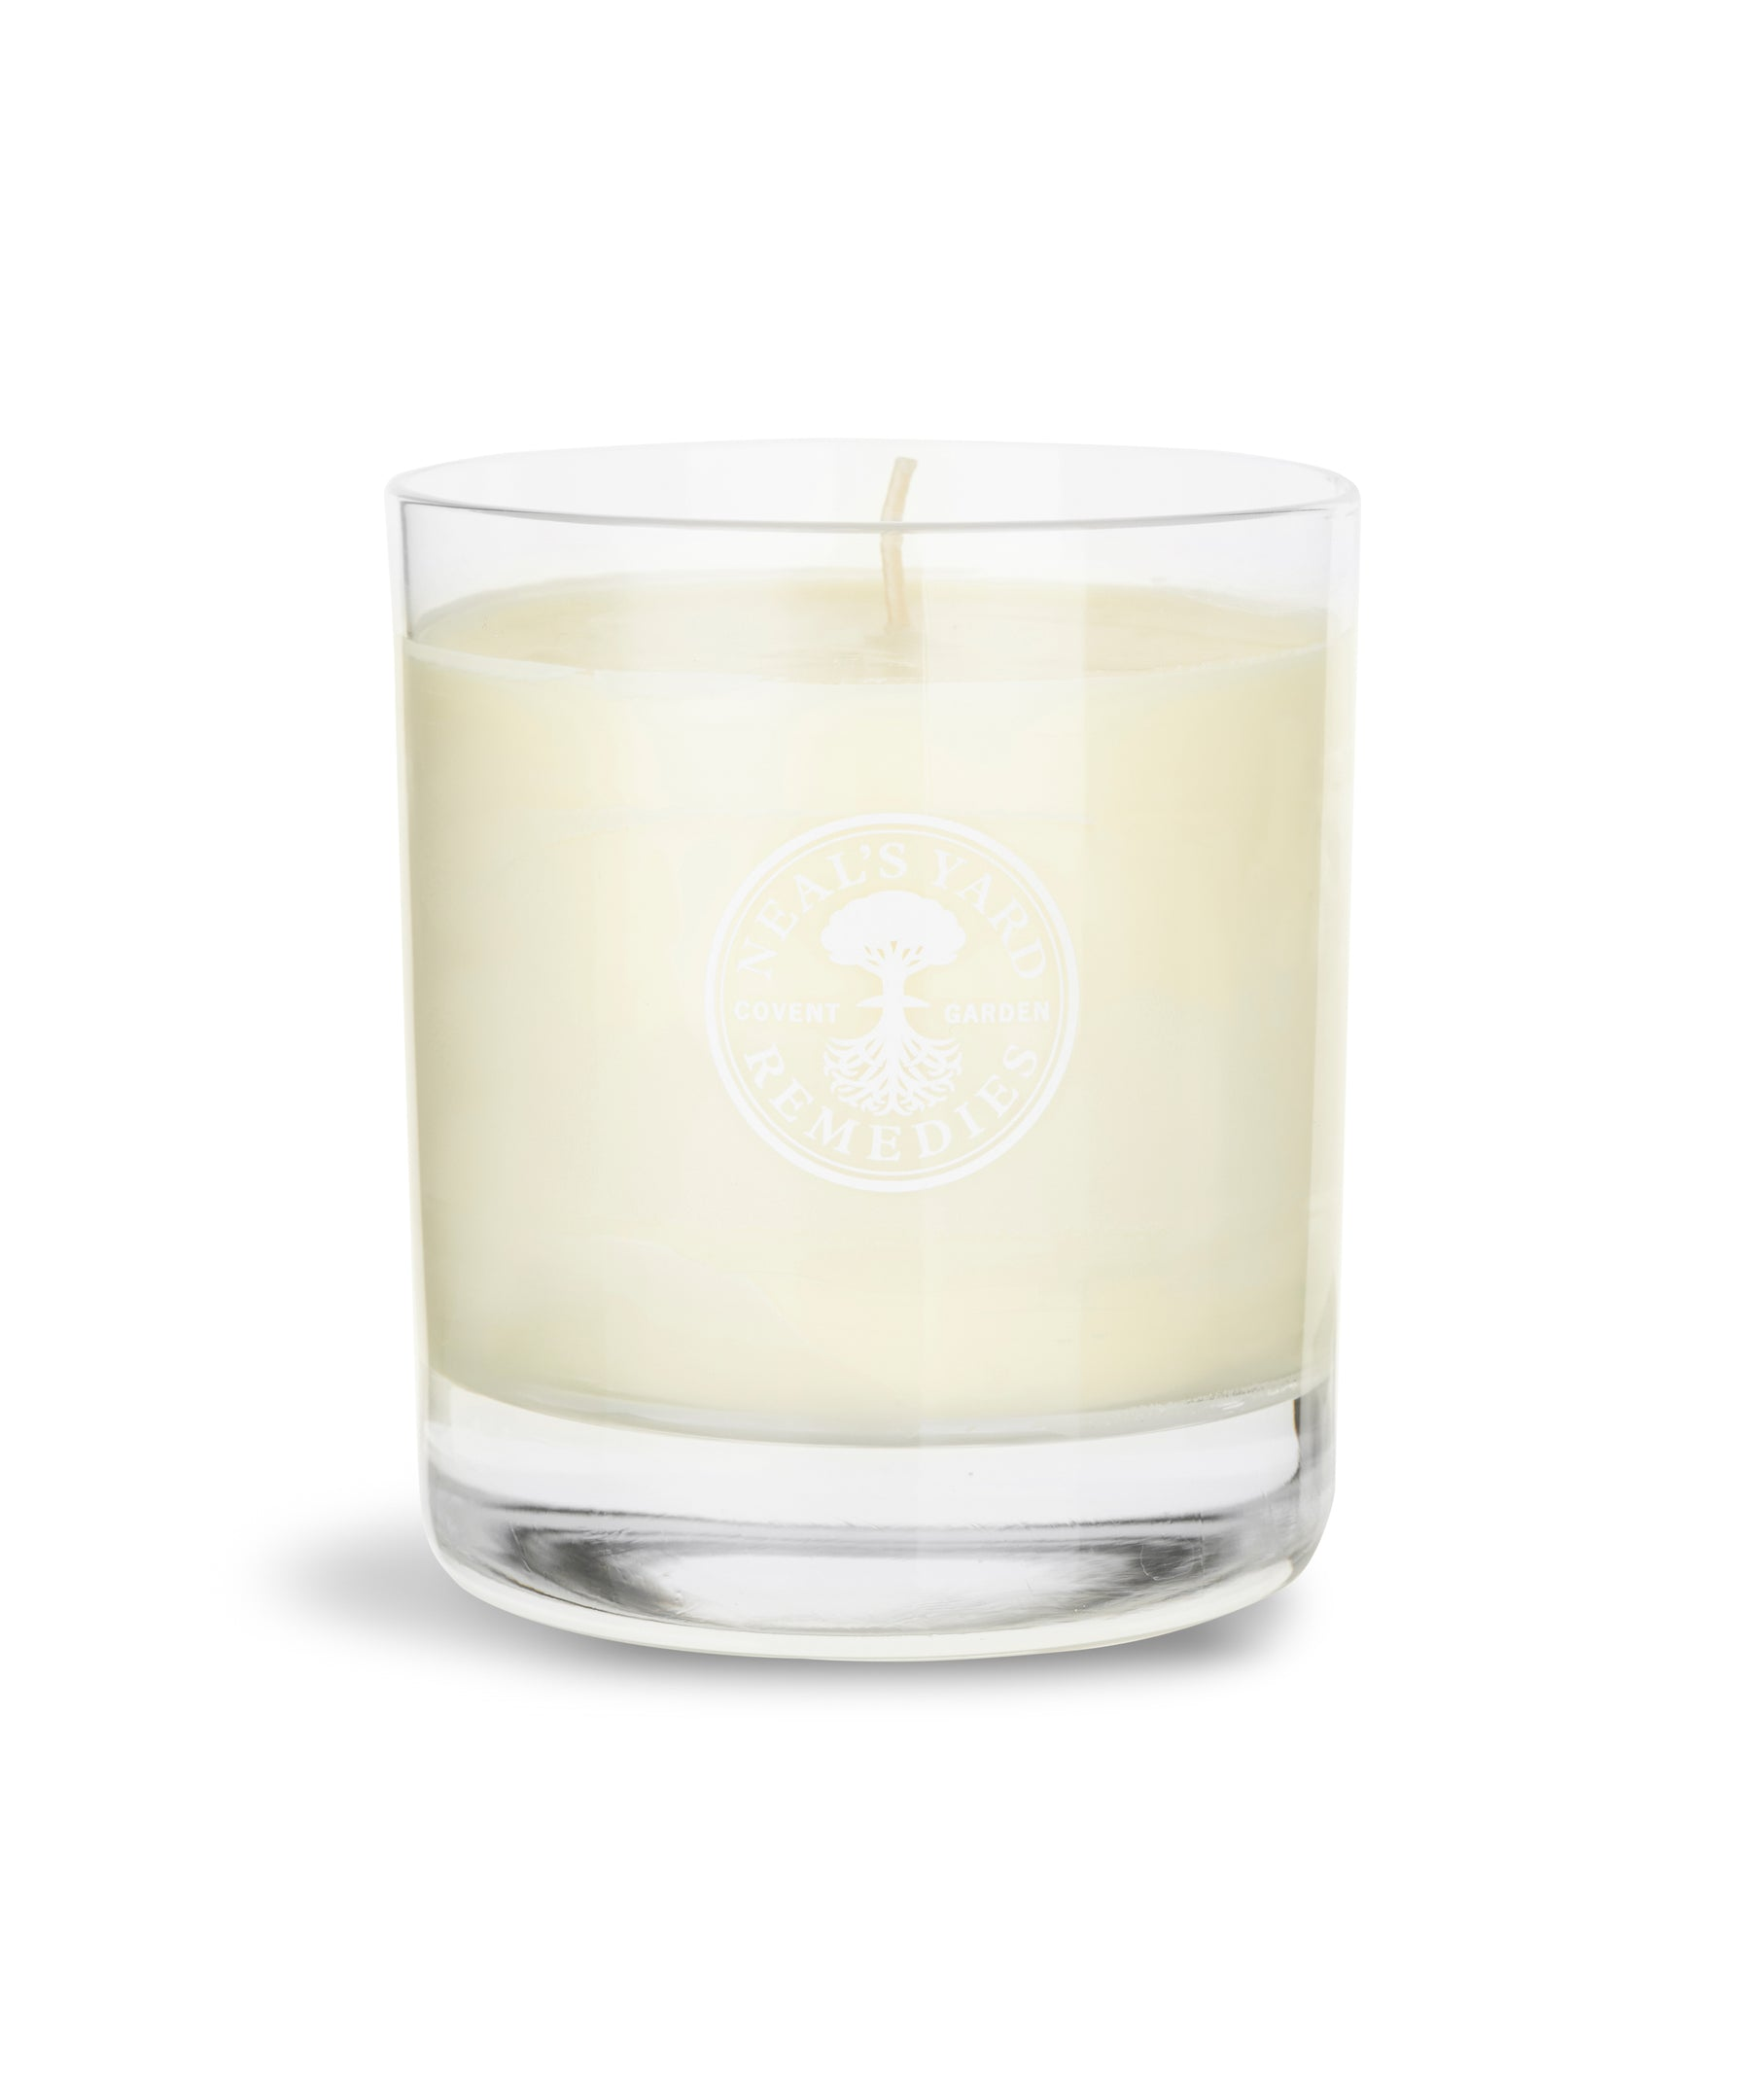 Organic Aromatherapy Candle - Calming by Neal's Yard Remedies